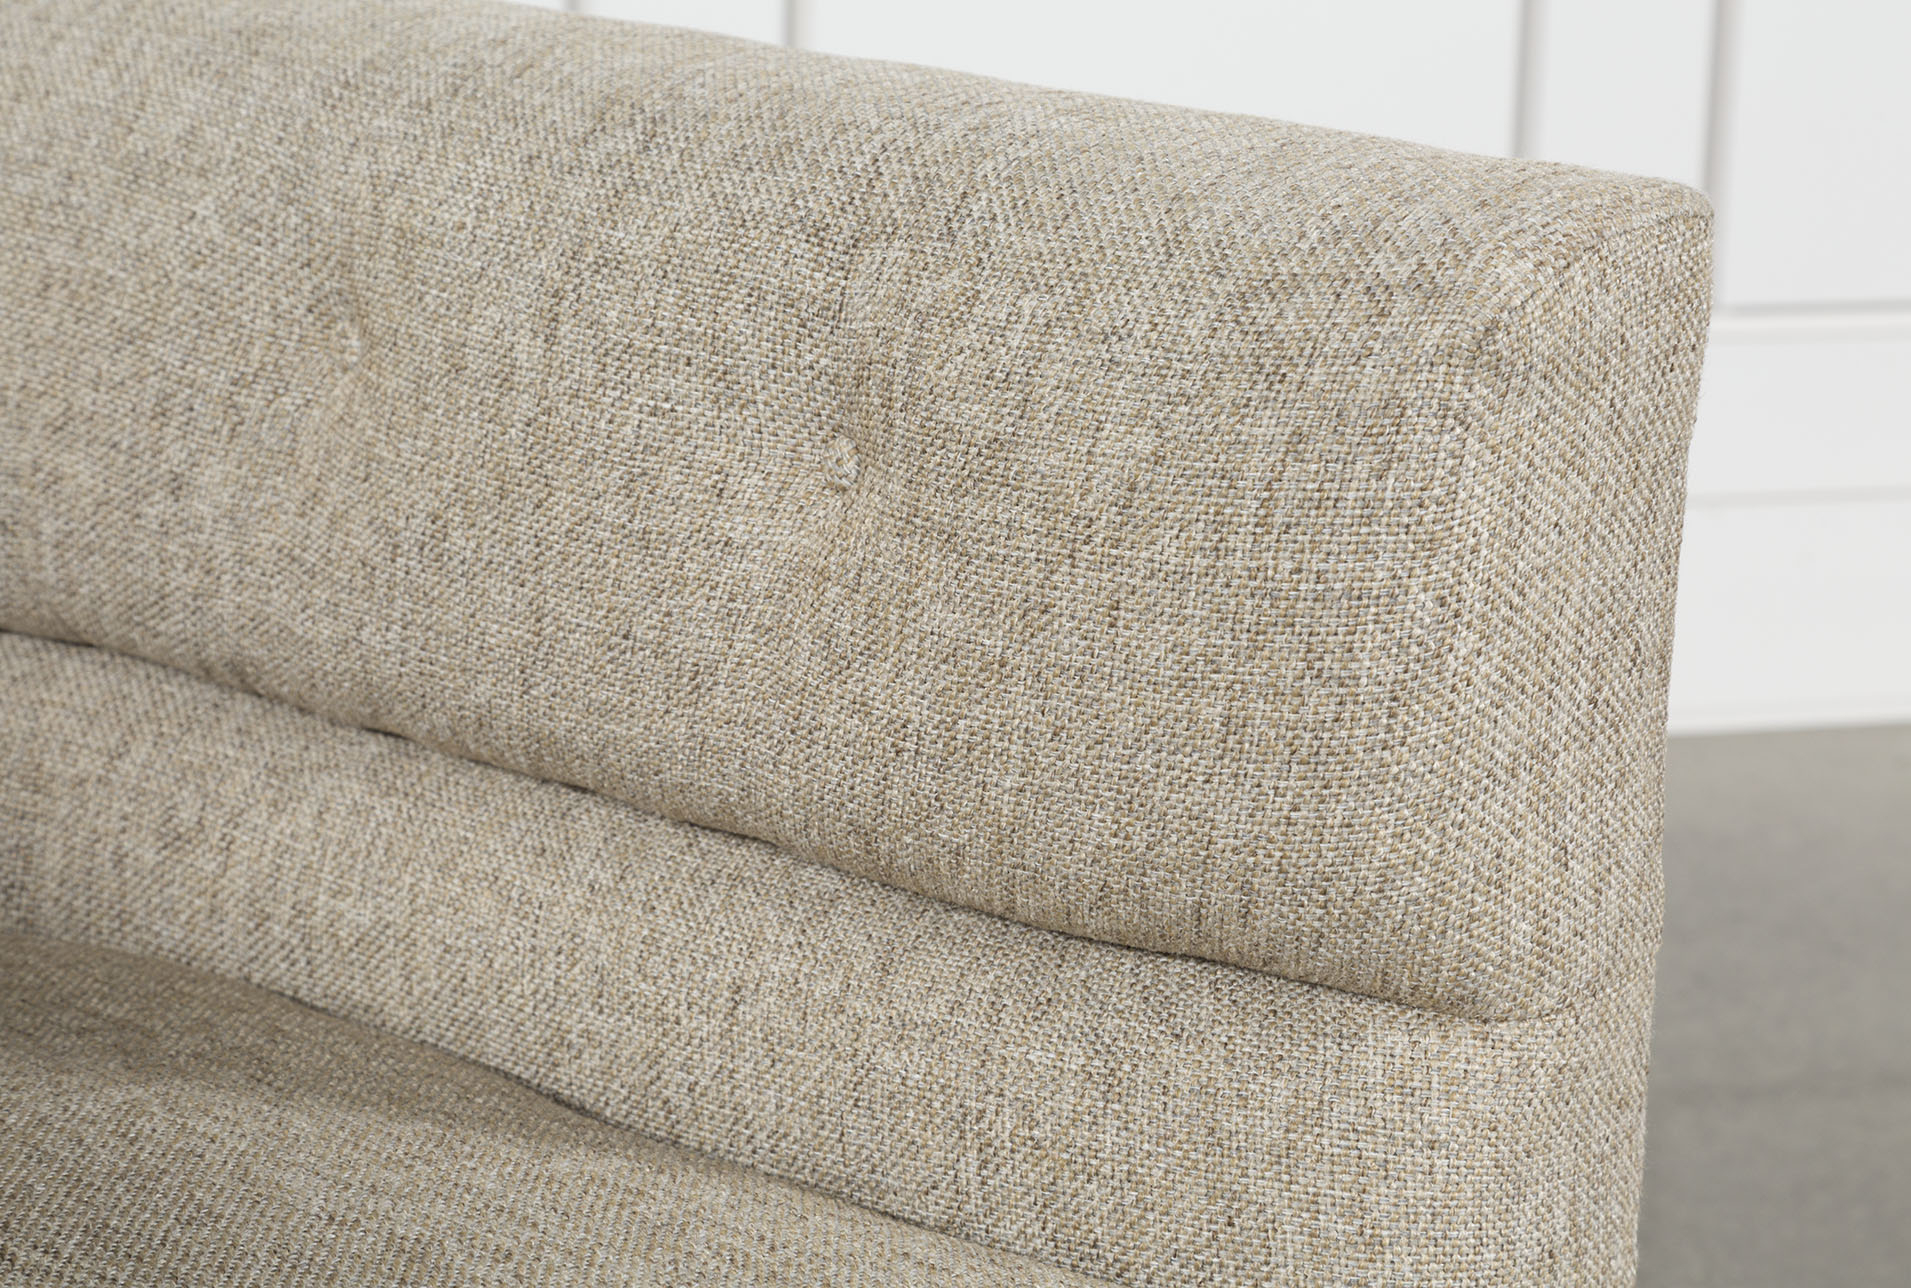 Matteo Estate Sofanate Berkus And Jeremiah Brent In 2018 Intended For Matteo Arm Sofa Chairs By Nate Berkus And Jeremiah Brent (Image 7 of 25)